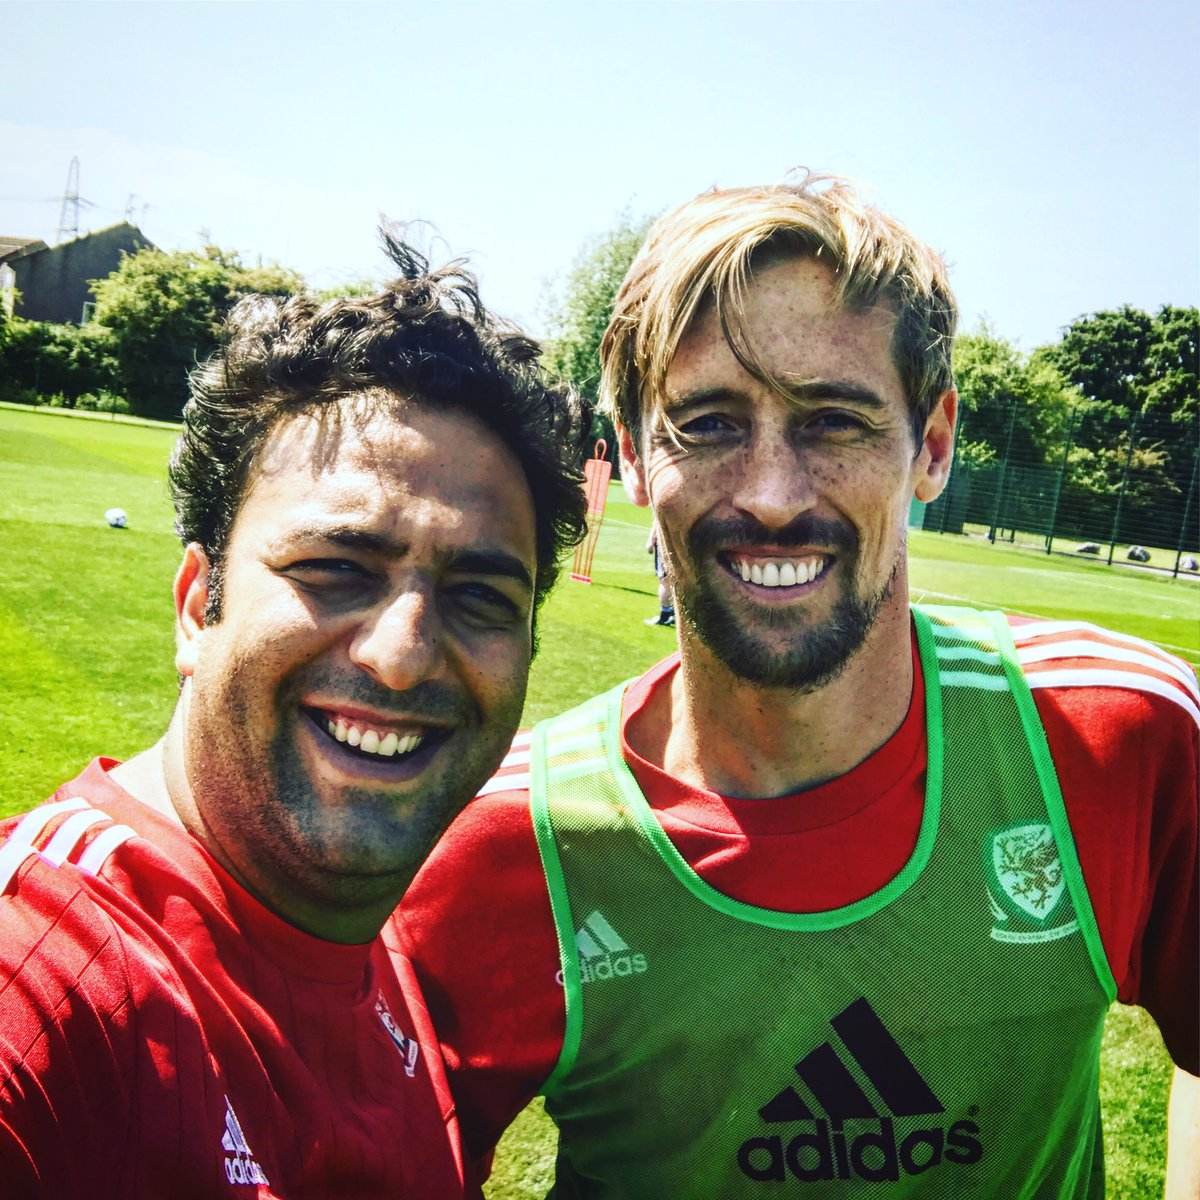 With the Big man @FAWCoachEd for our A Course #Wales #uefa #coaching #football # <br>http://pic.twitter.com/Or4BS6EeXv